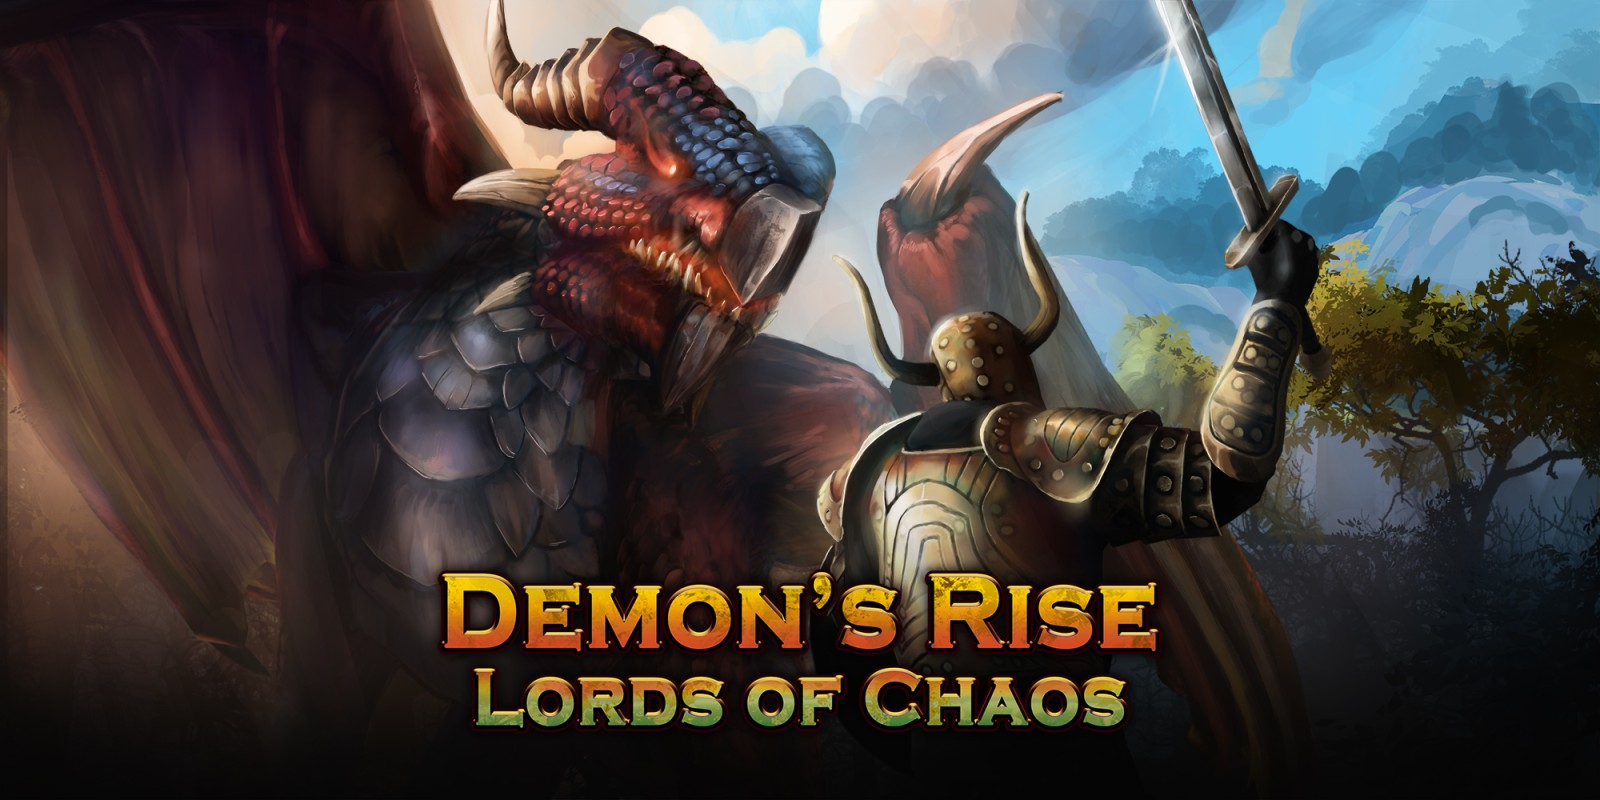 Demon's Rise - Lords of Chaos